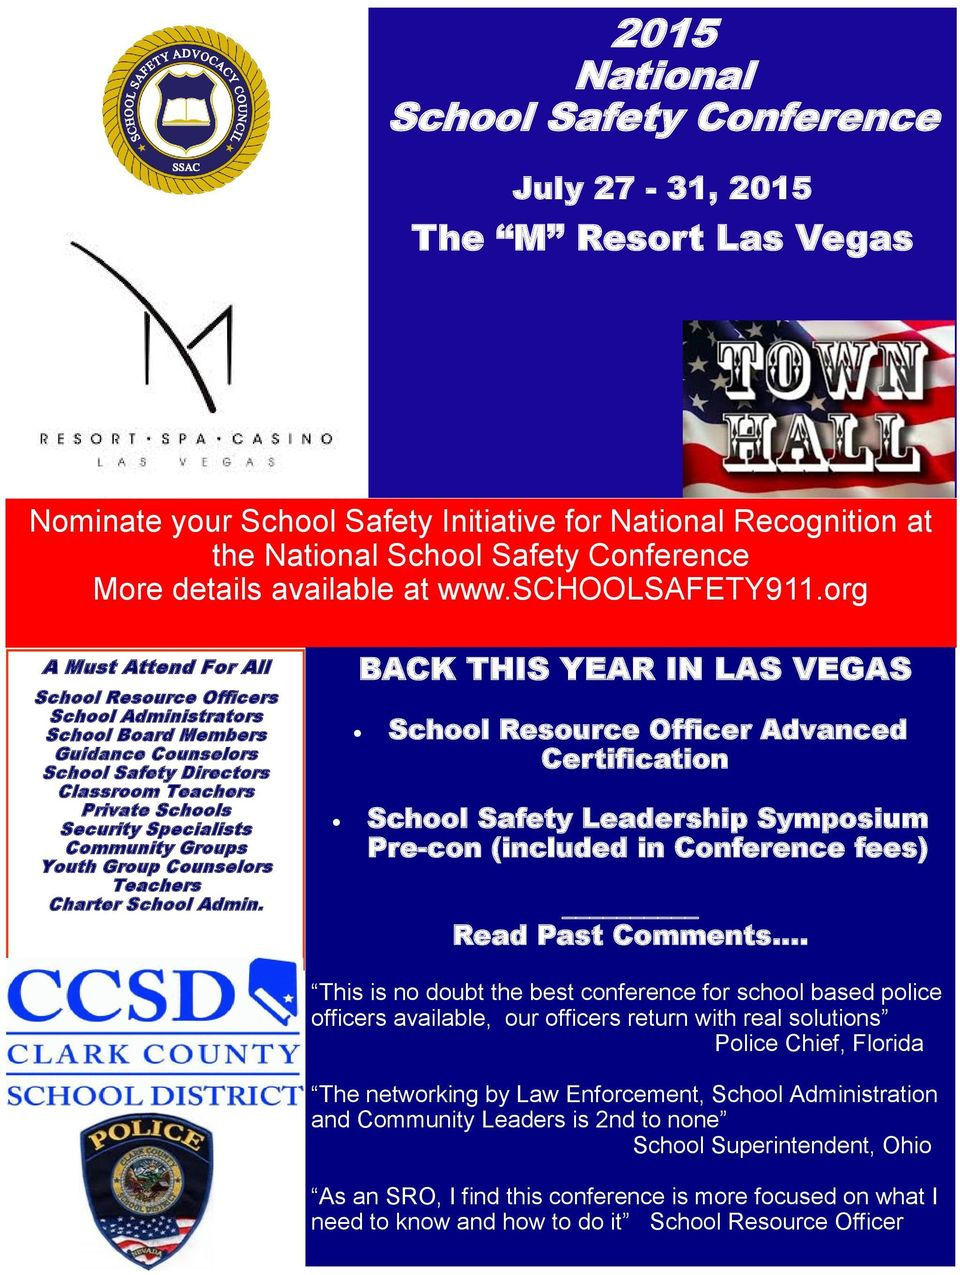 org A Must Attend For All School Resource Officers School Administrators School Board Members Guidance Counselors School Safety Directors Classroom Teachers Private Schools Security Specialists